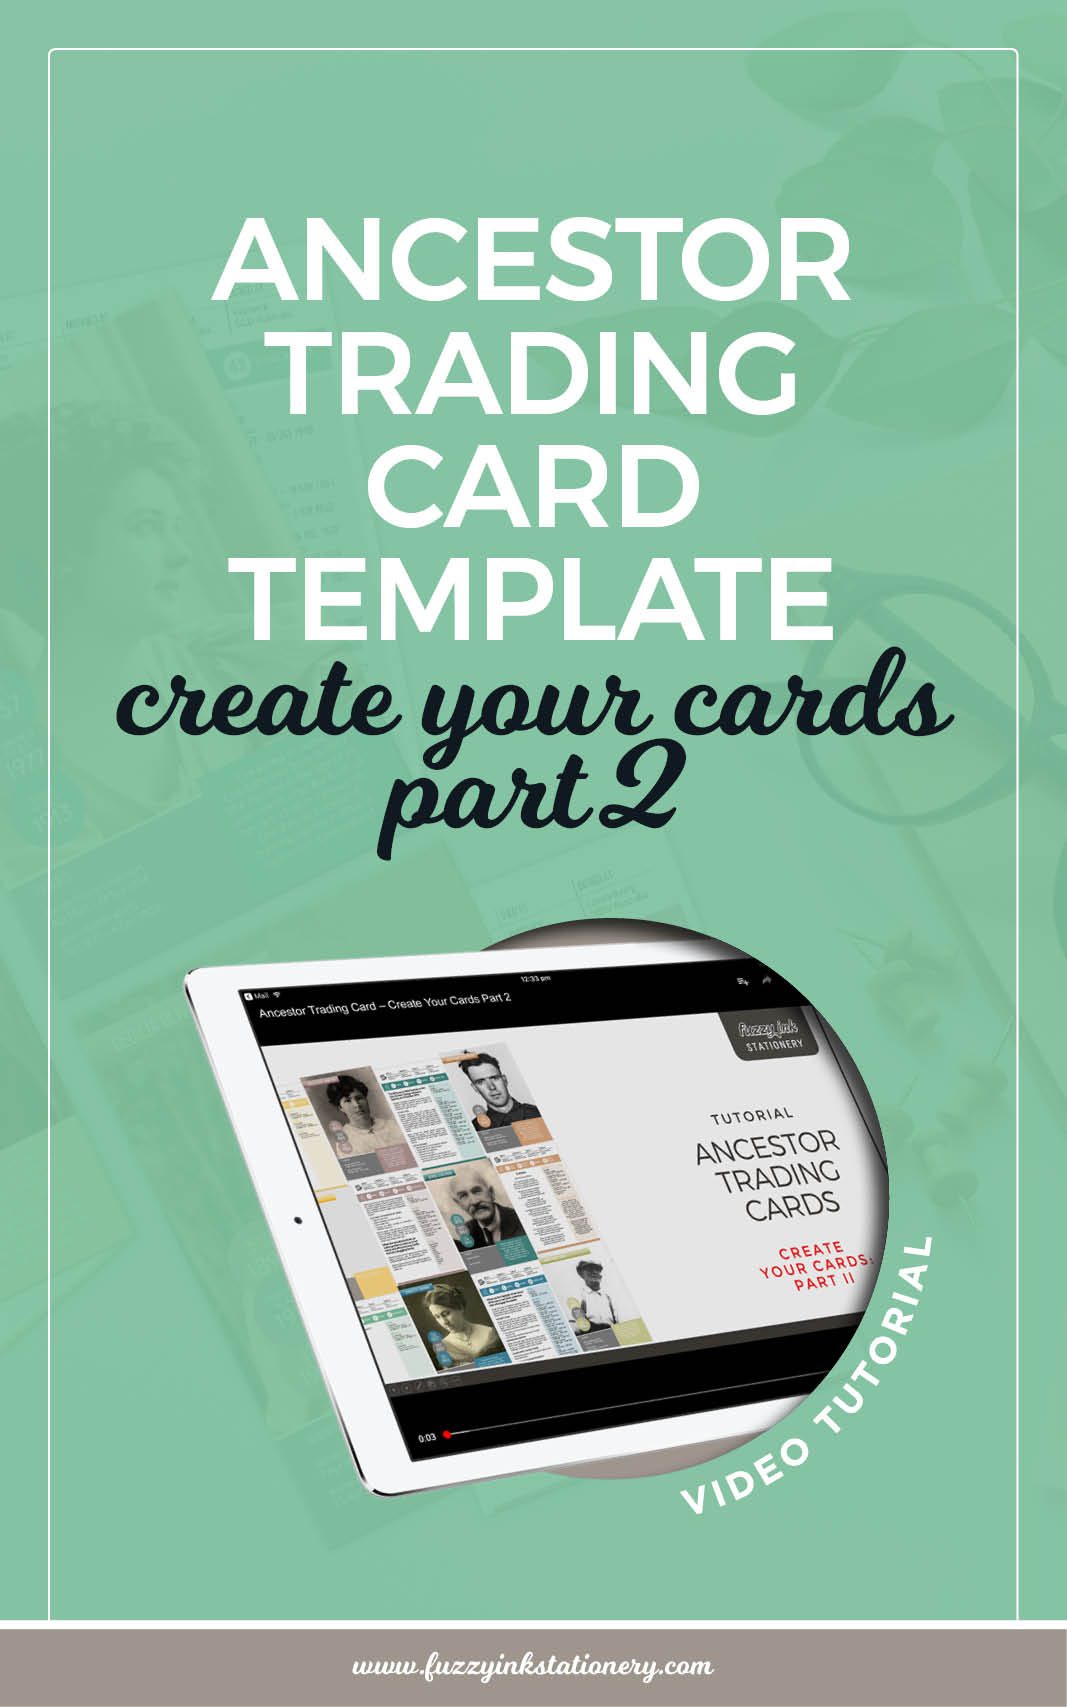 Fuzzy Ink Stationery Ancestor Trading Card Template Create Your Cards part 2 Tutorial